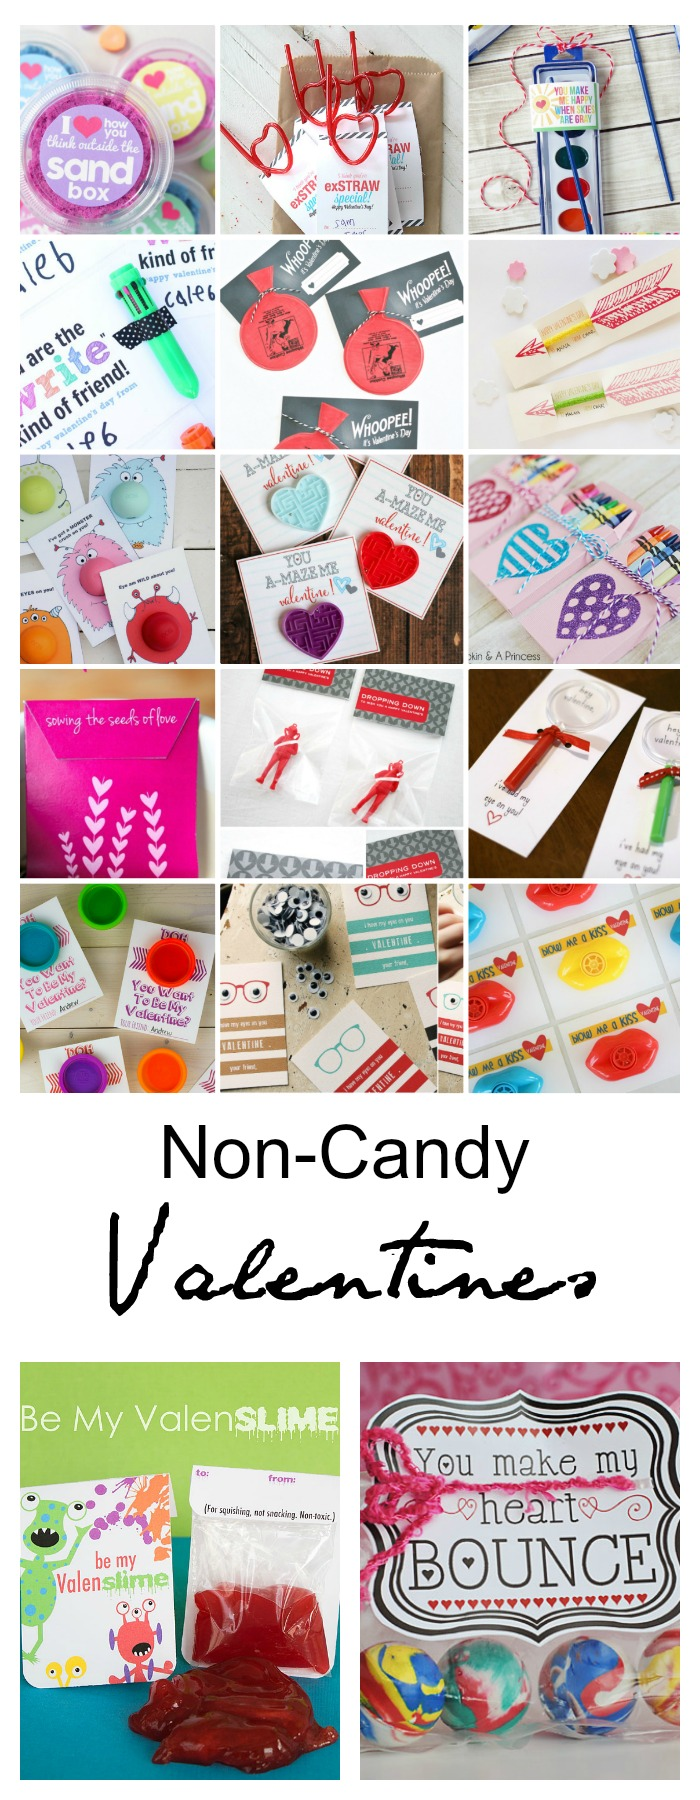 Non-Candy-Valentines-Day-Ideas-Pin